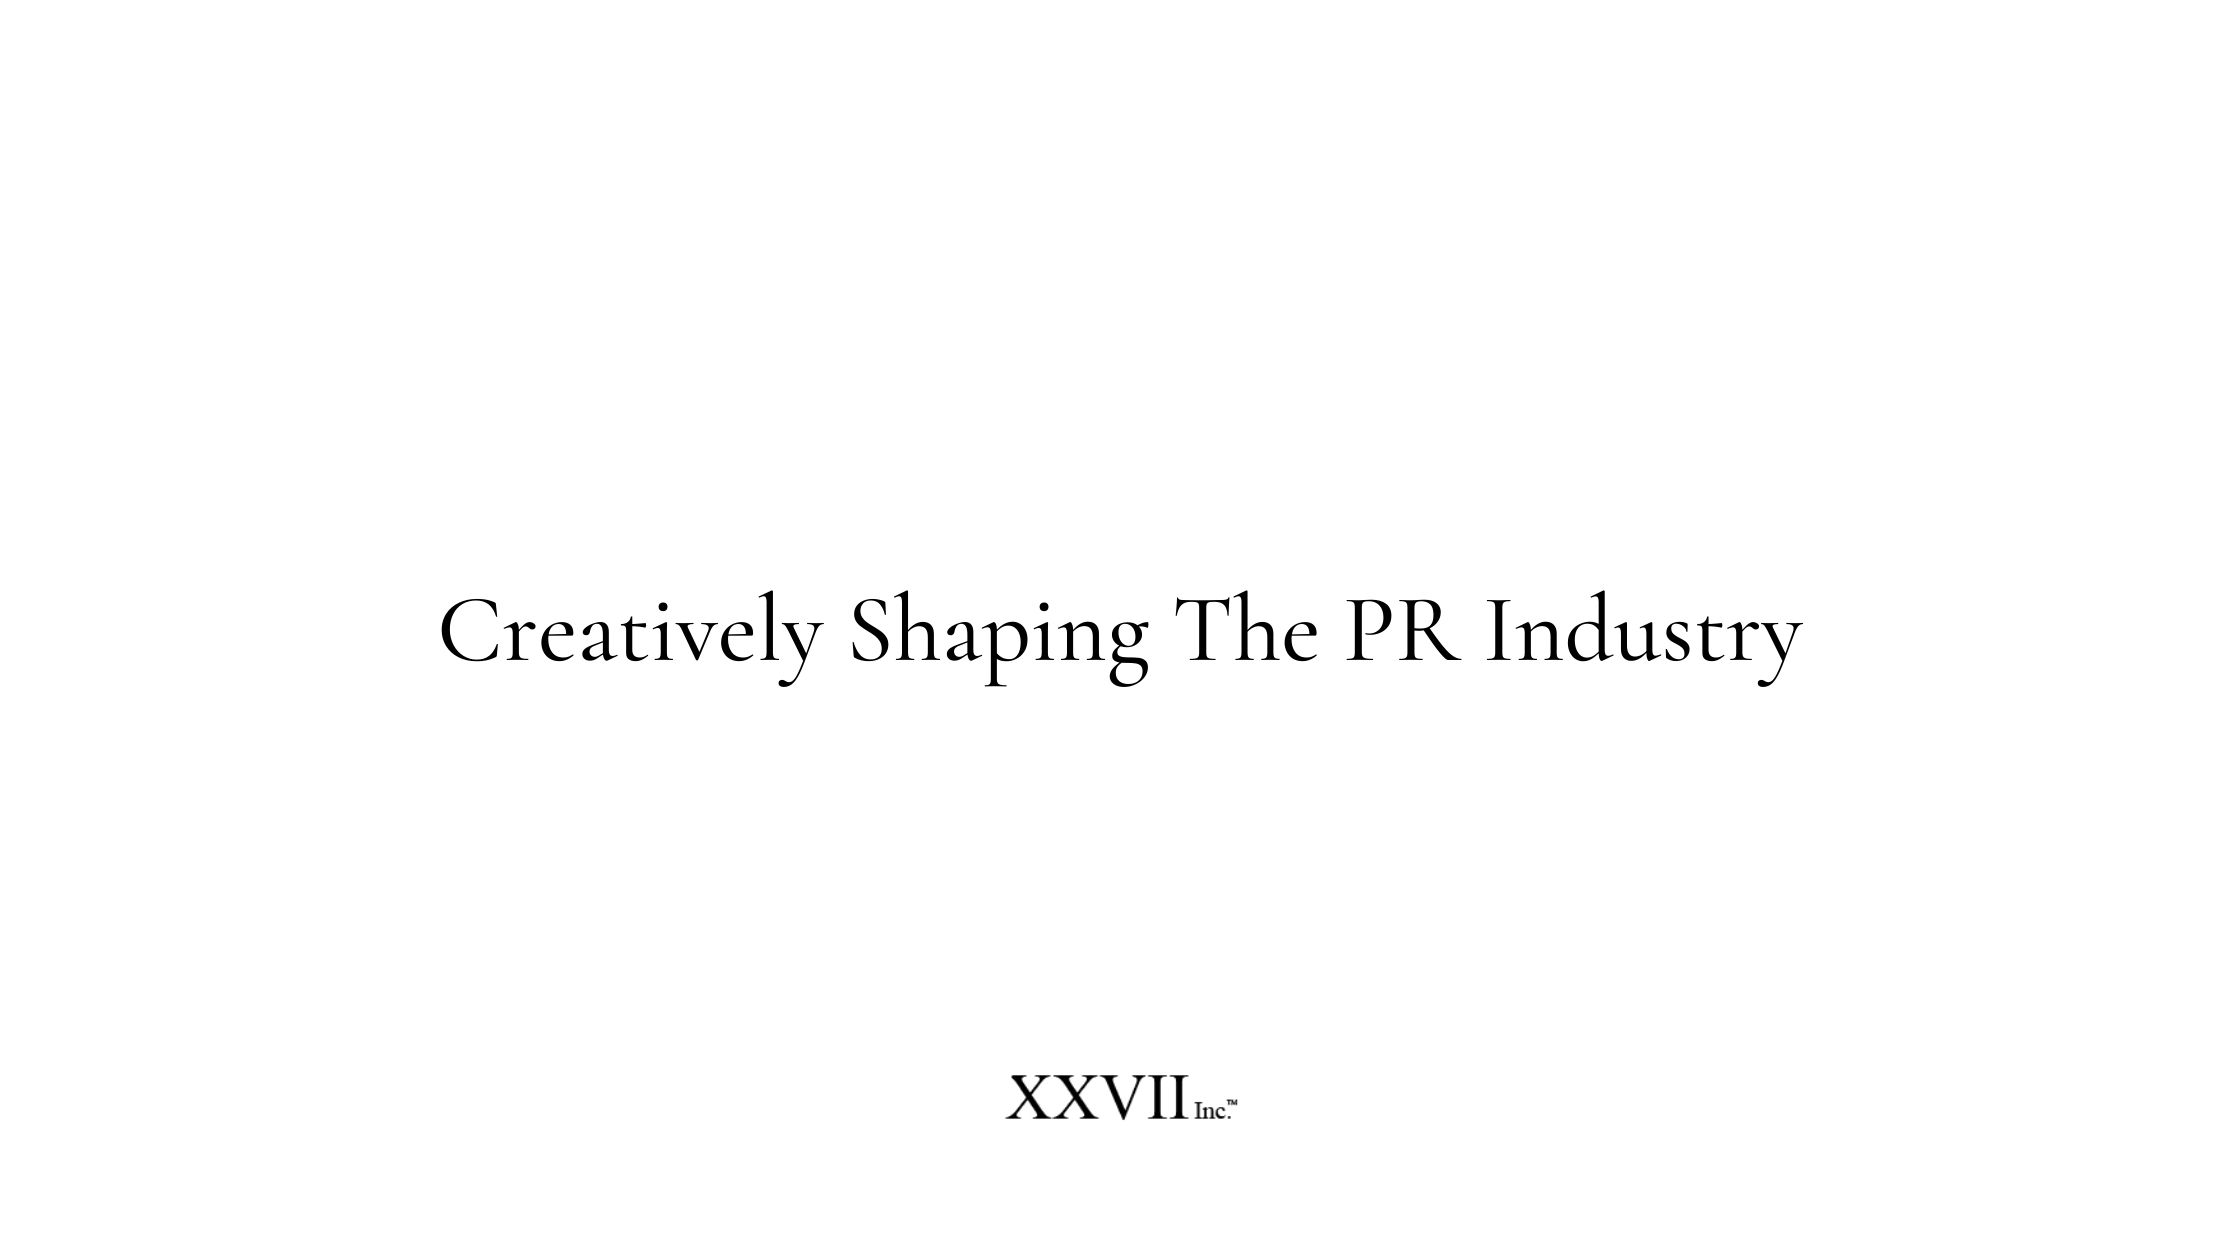 Creatively Shaping The PR Industry